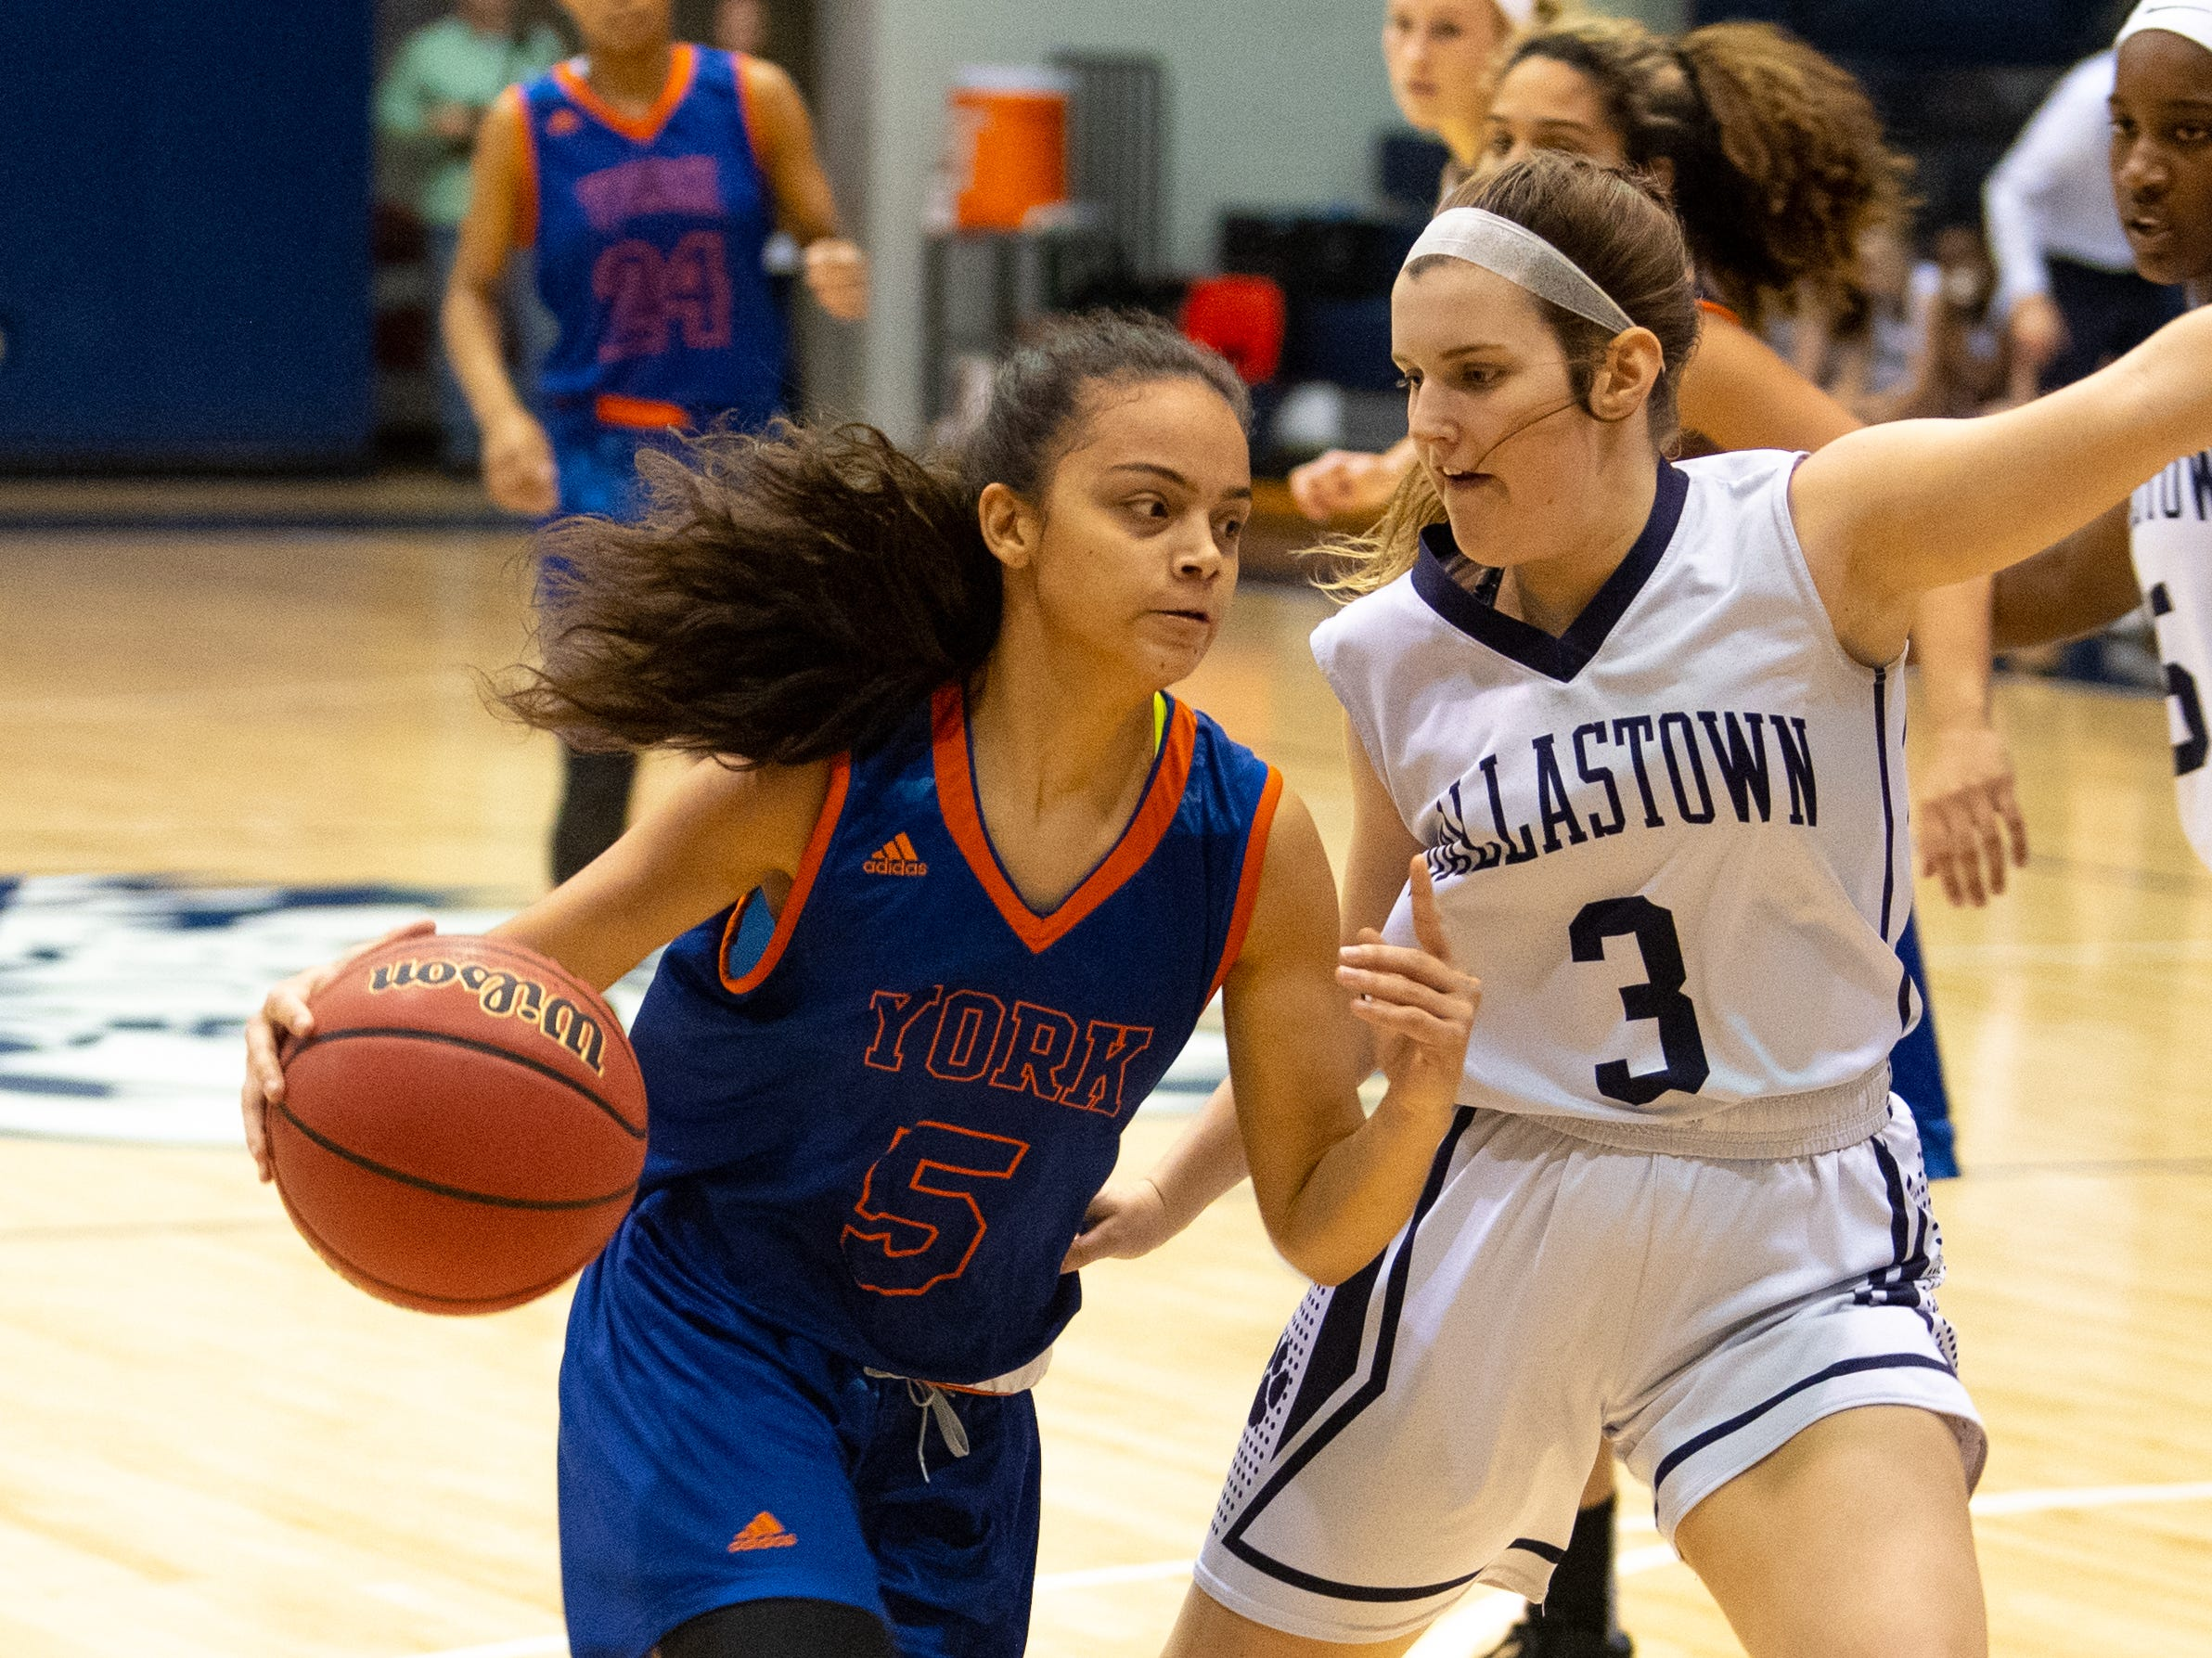 Jamison (5) tries to go past Claire Teyral (3) during the girls' basketball game between Dallastown and York High at Dallastown High School, December 14, 2018. The Wildcats defeated the Bearcats 62-31.